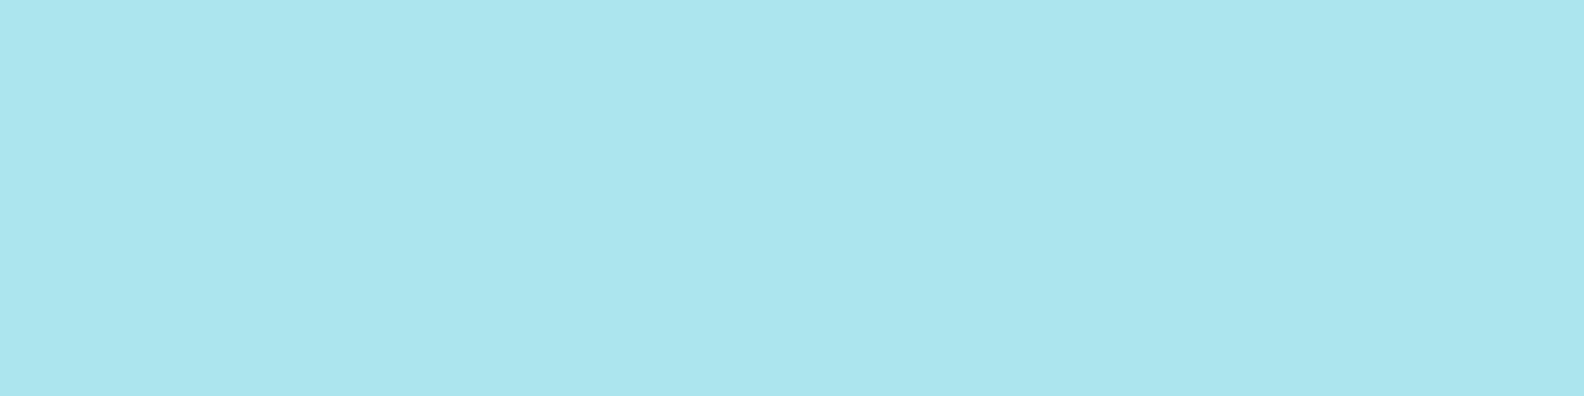 1584x396 Blizzard Blue Solid Color Background